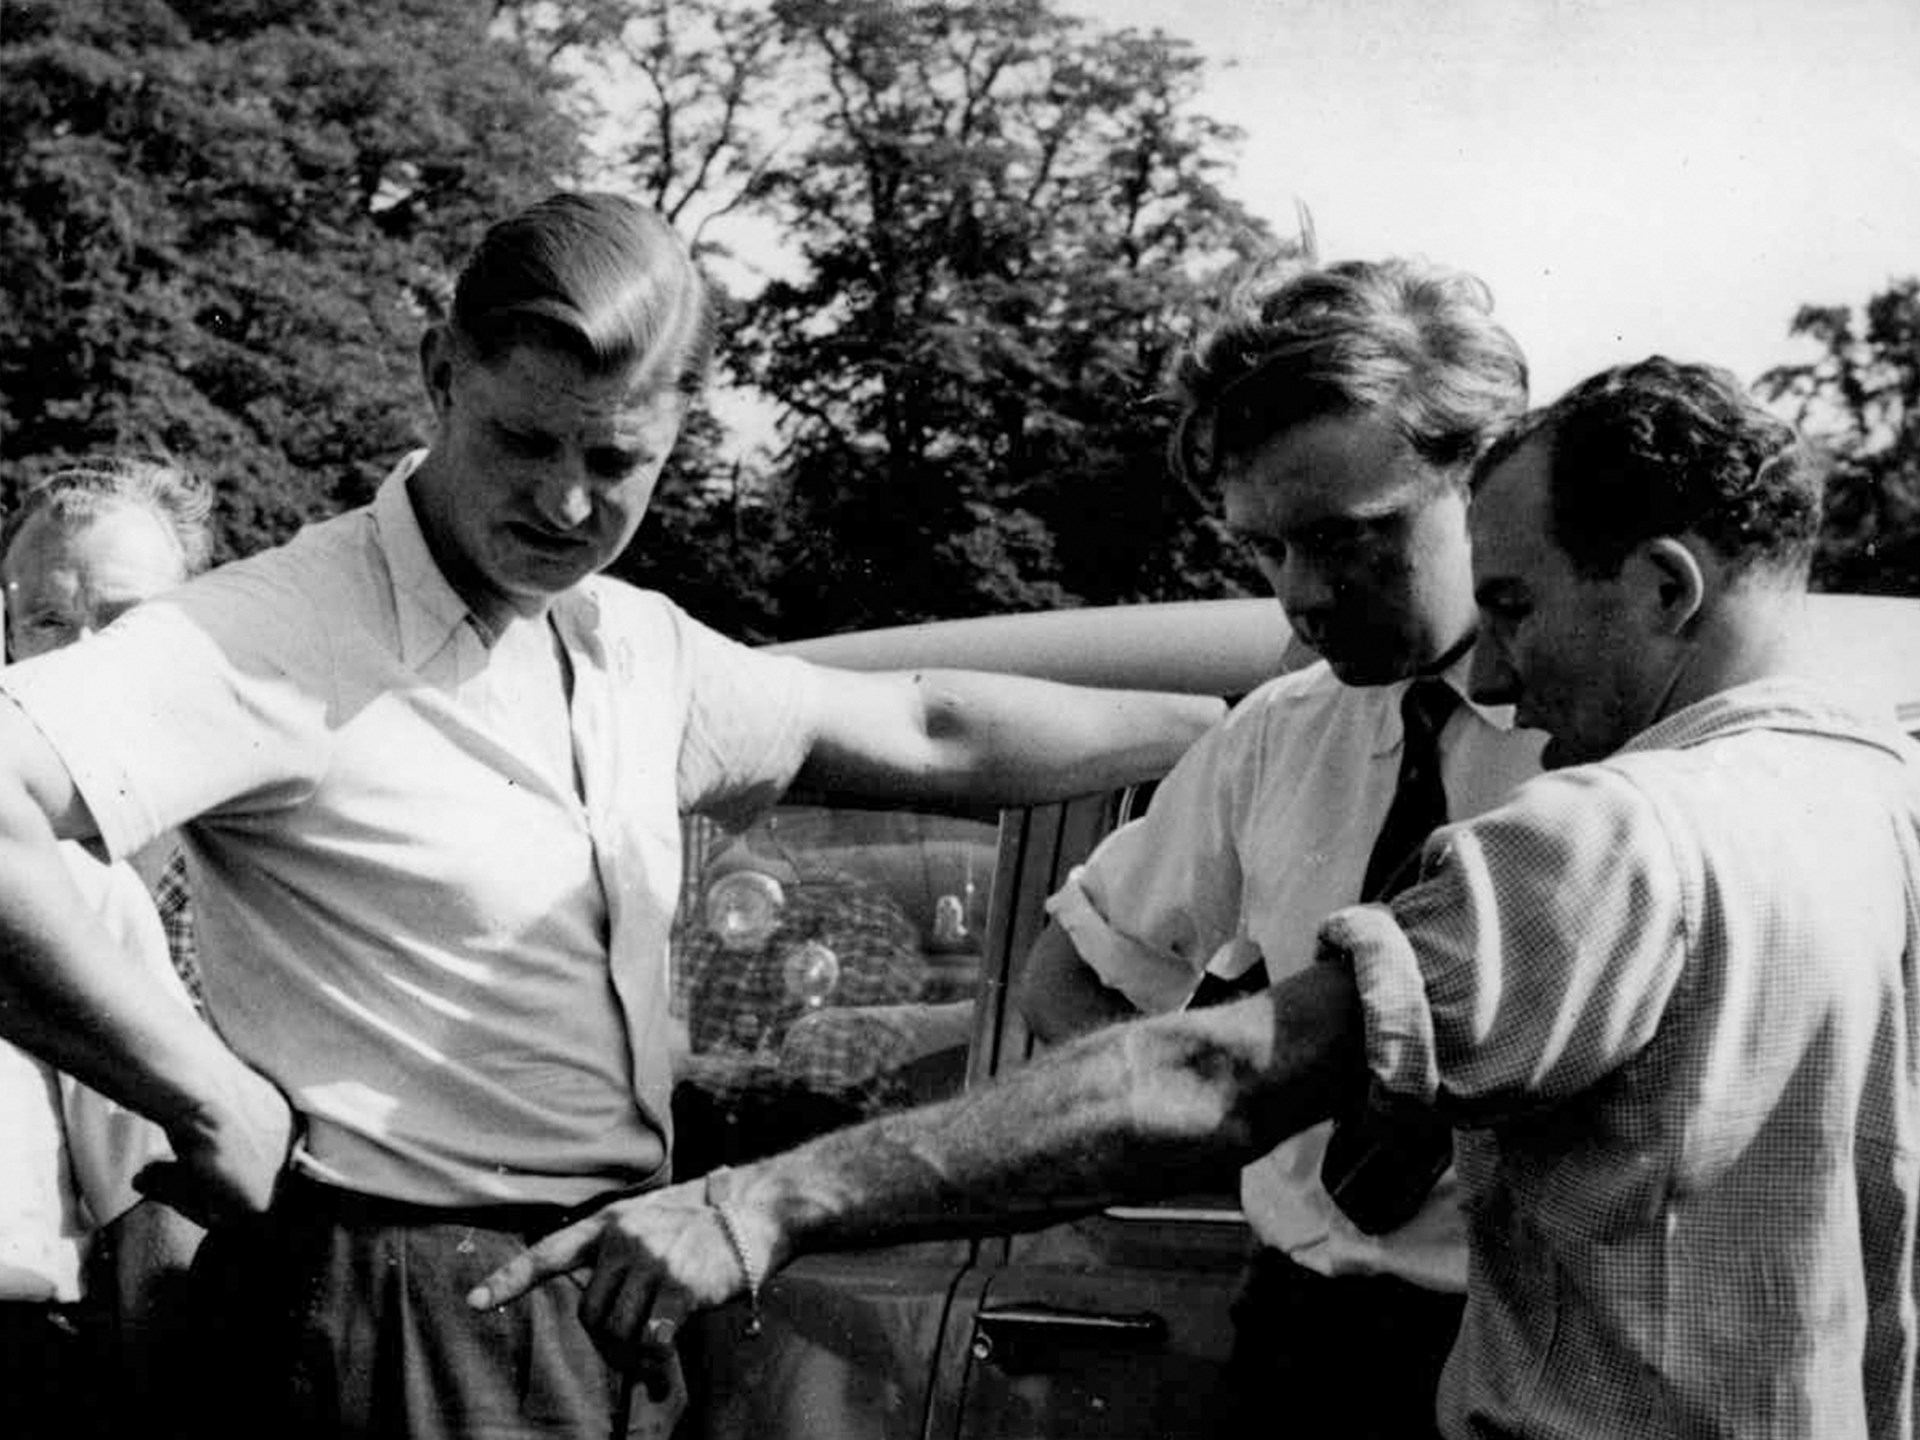 Jack Broadhead with Stirling Moss pointing out a feature of the car to Bob Berry.